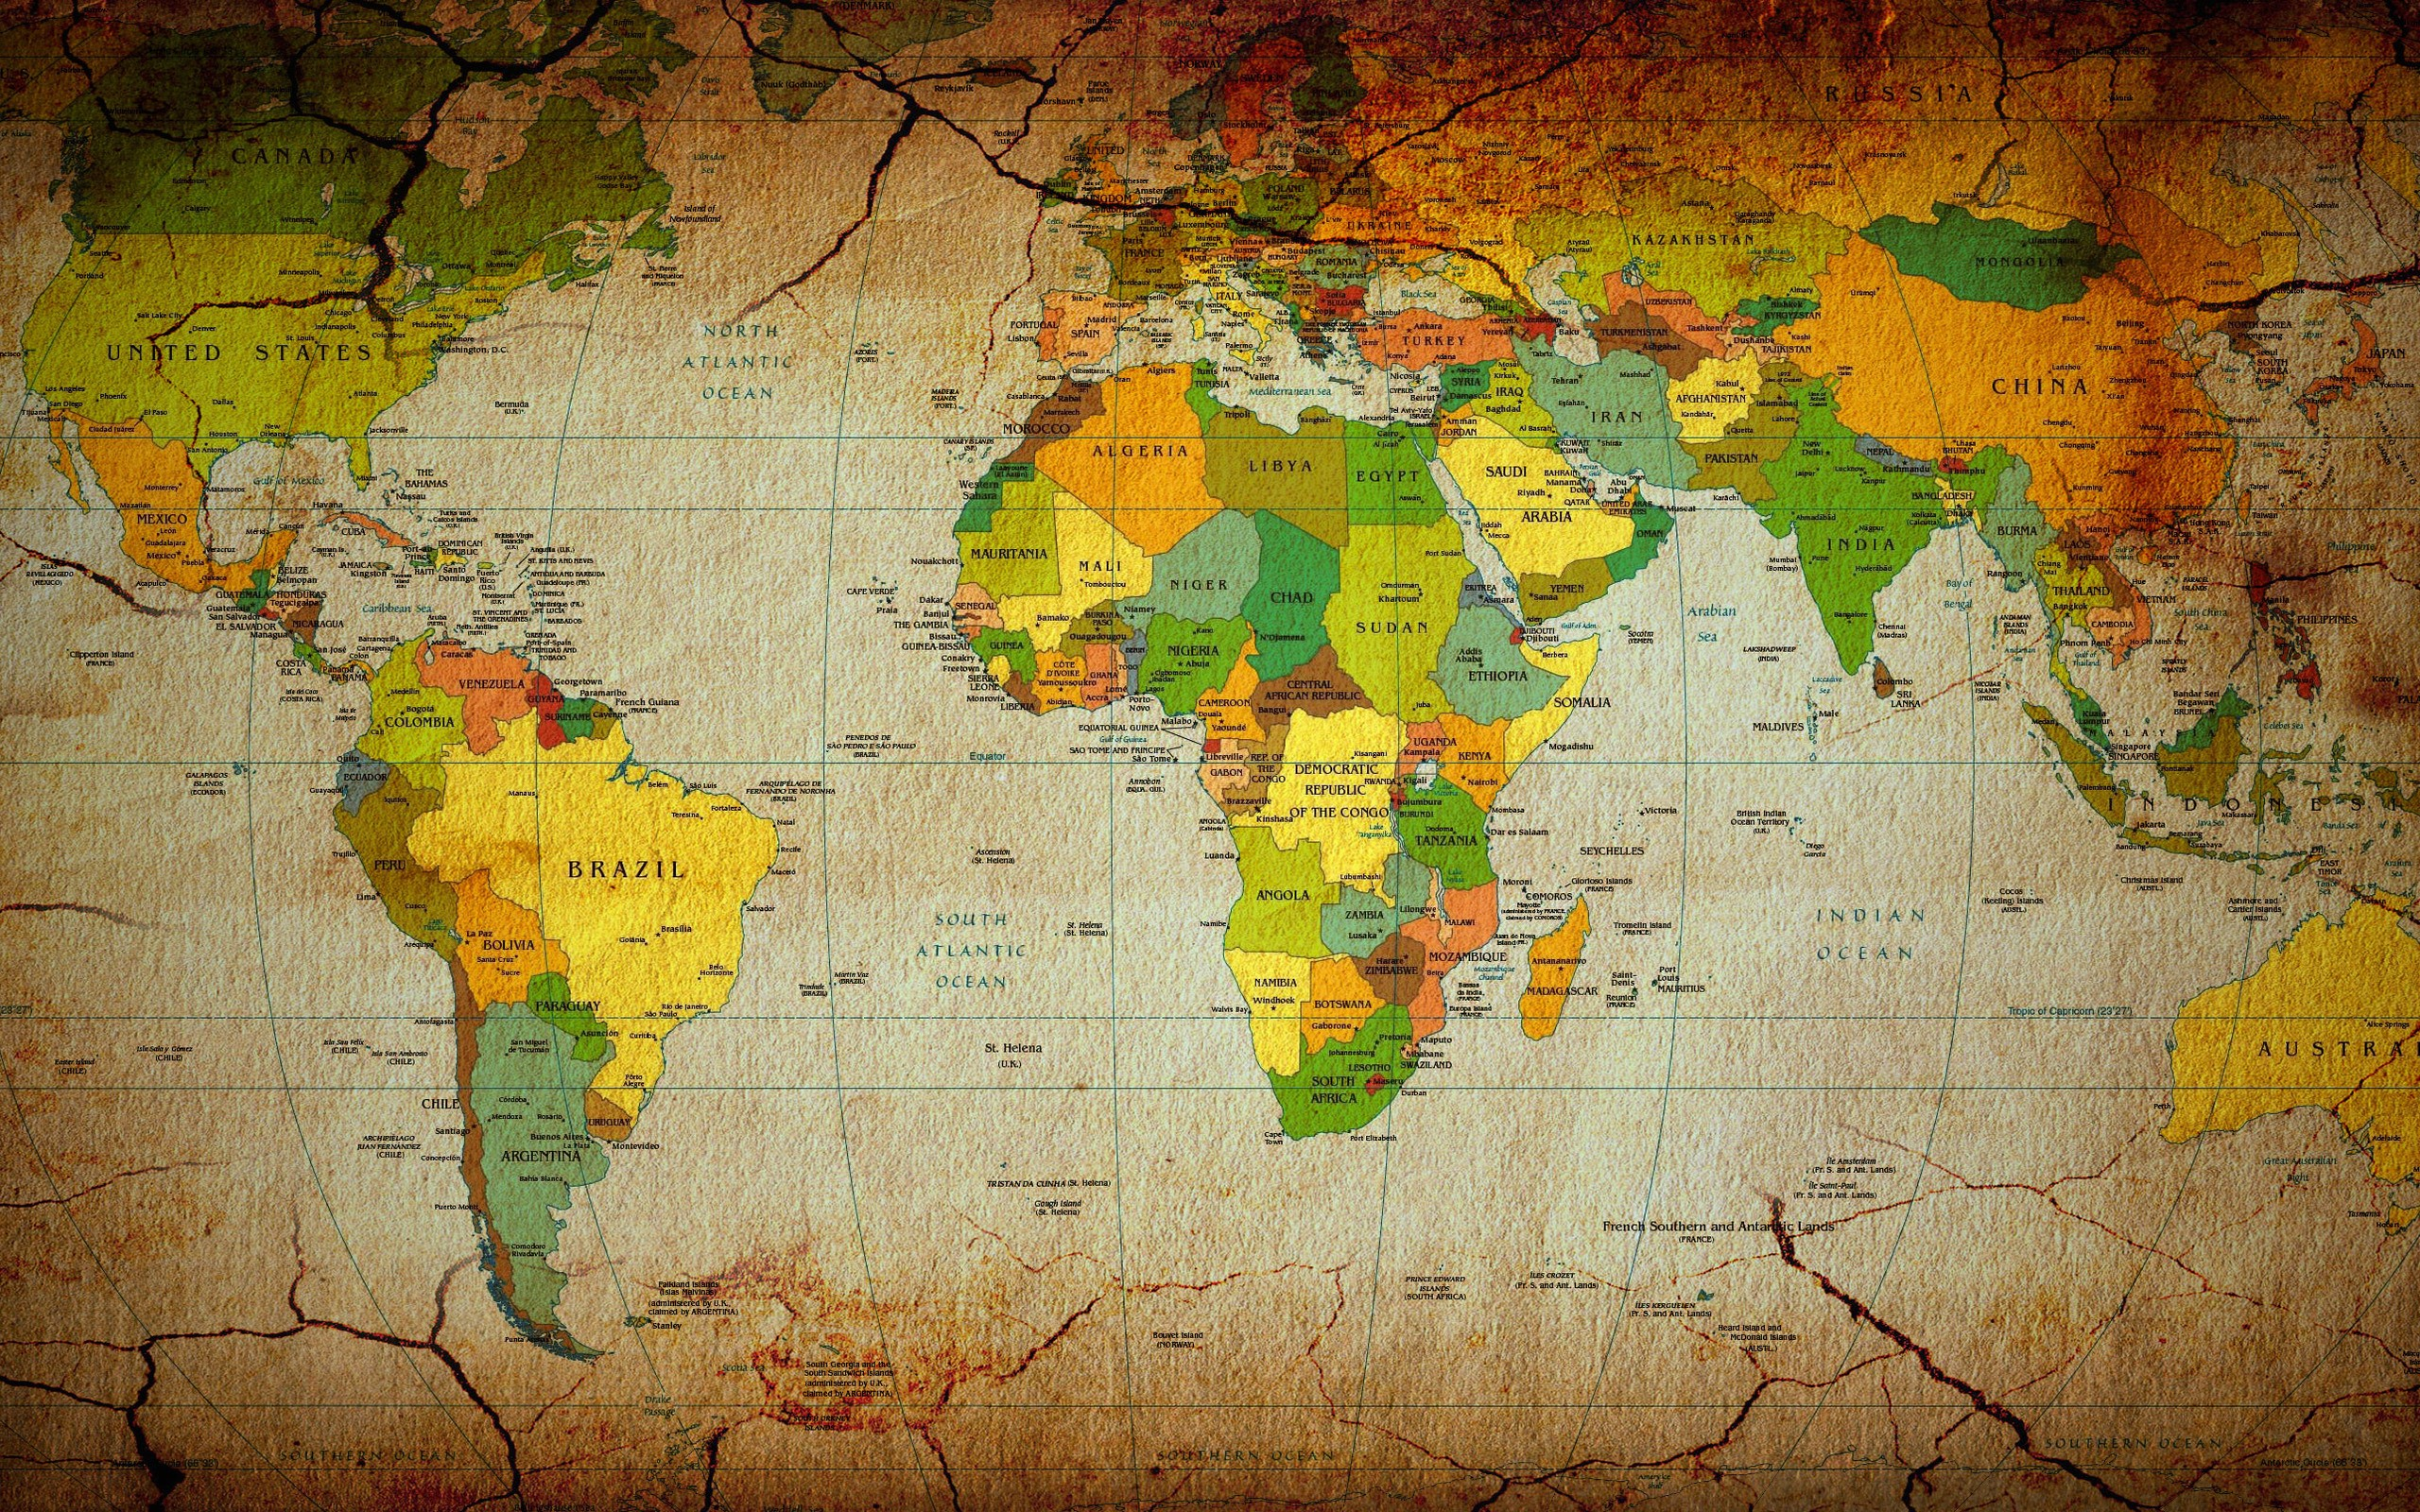 Download world map wallpaper 6254 2560x1600 px high resolution world map wallpaper 6254 gumiabroncs